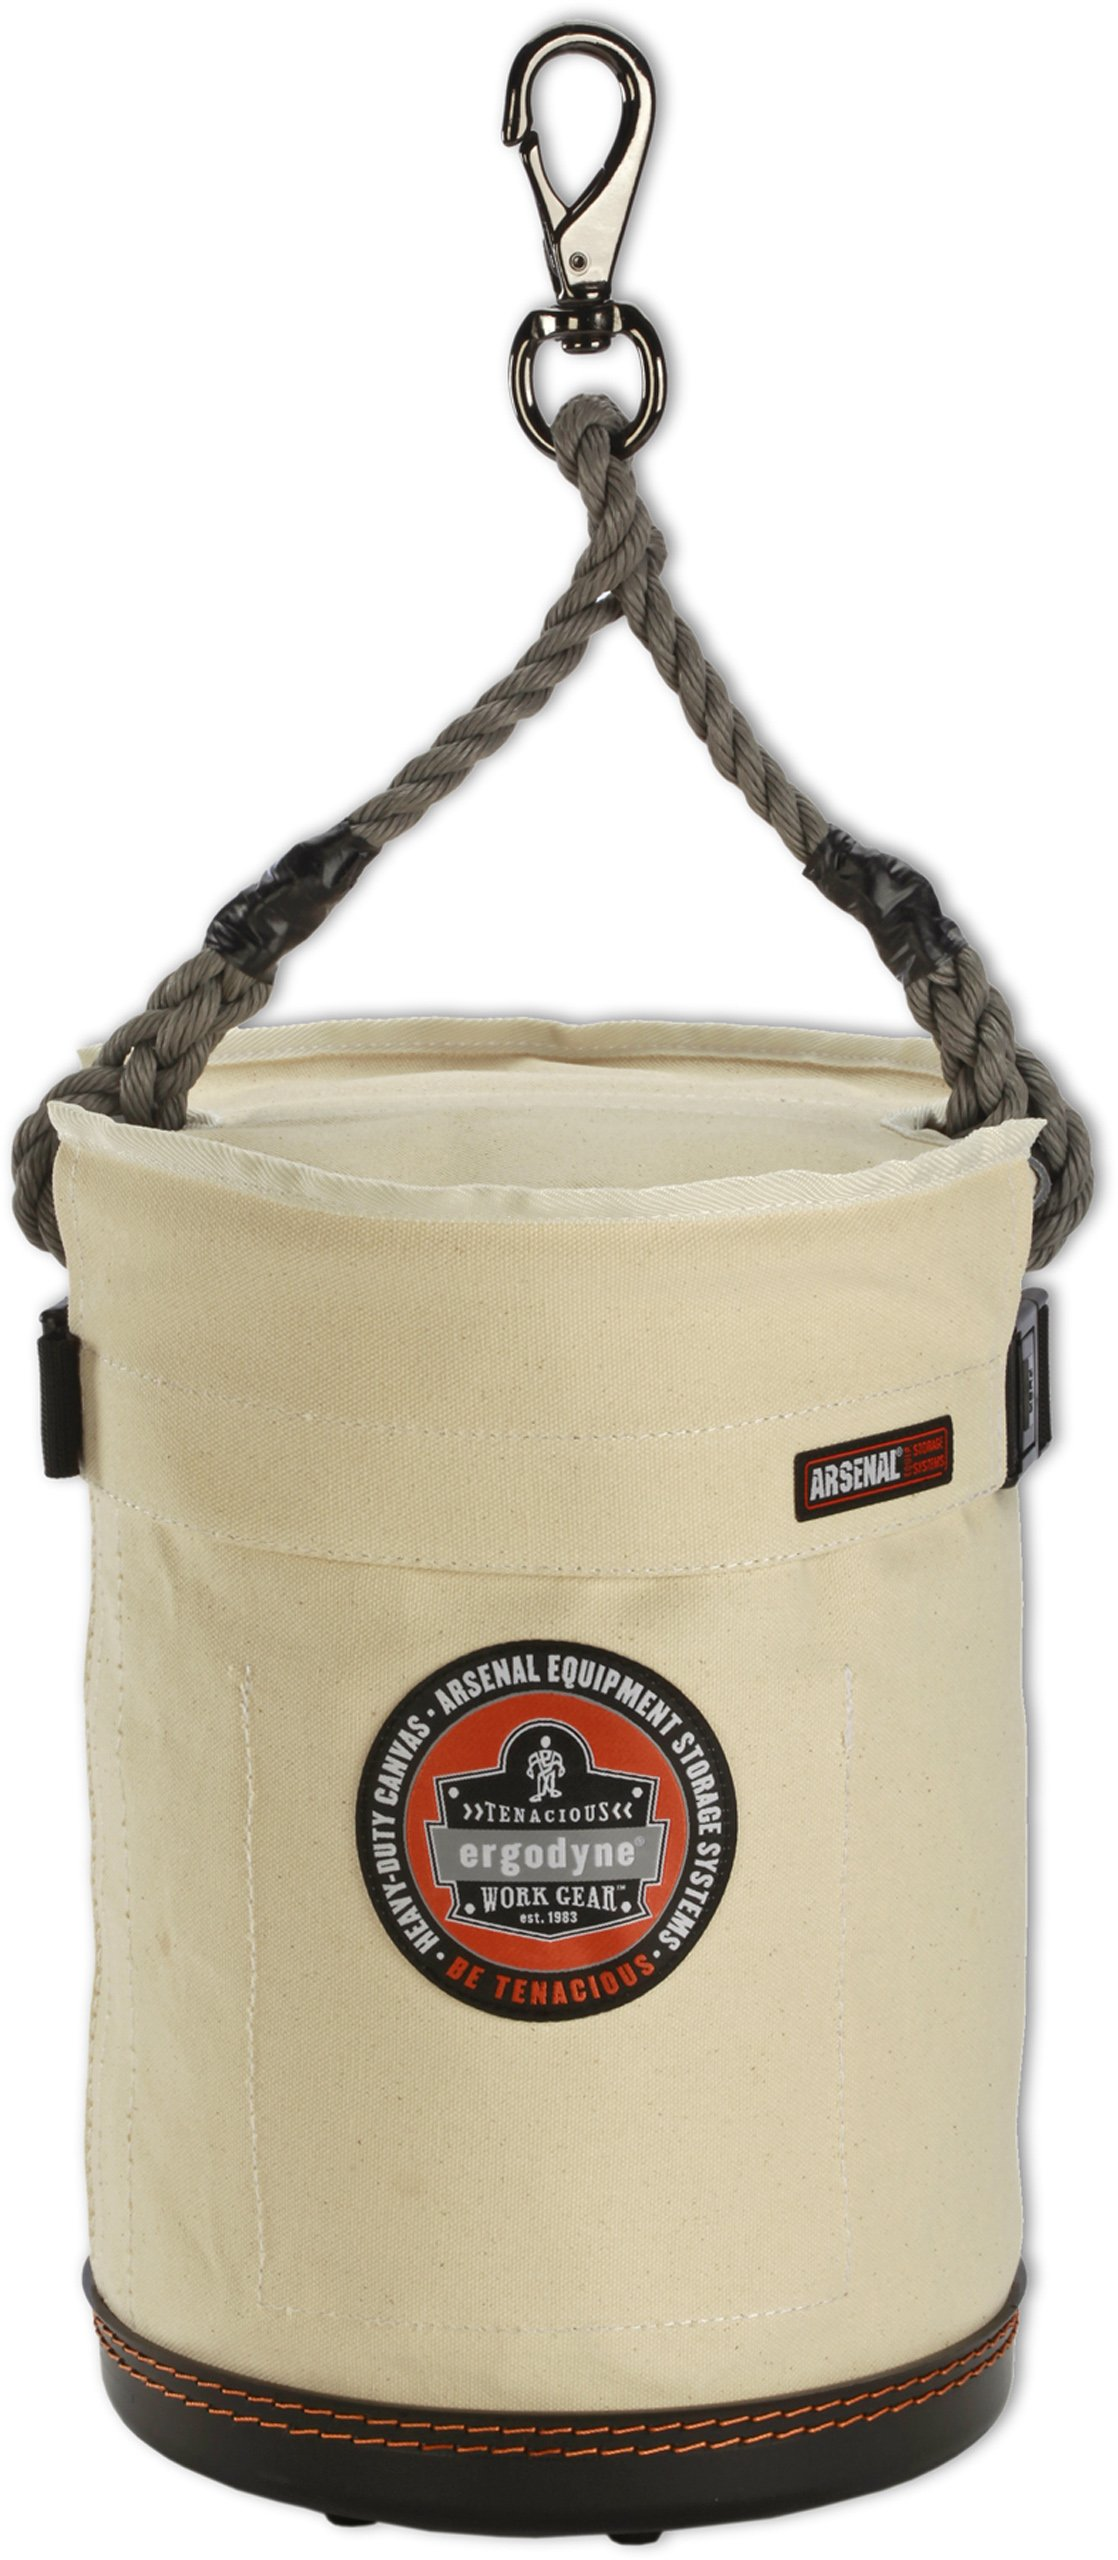 Ergodyne Arsenal 5744T 10-Inch Top Diameter by 14-Inch Height Small Bucket with Safety Top and Snap